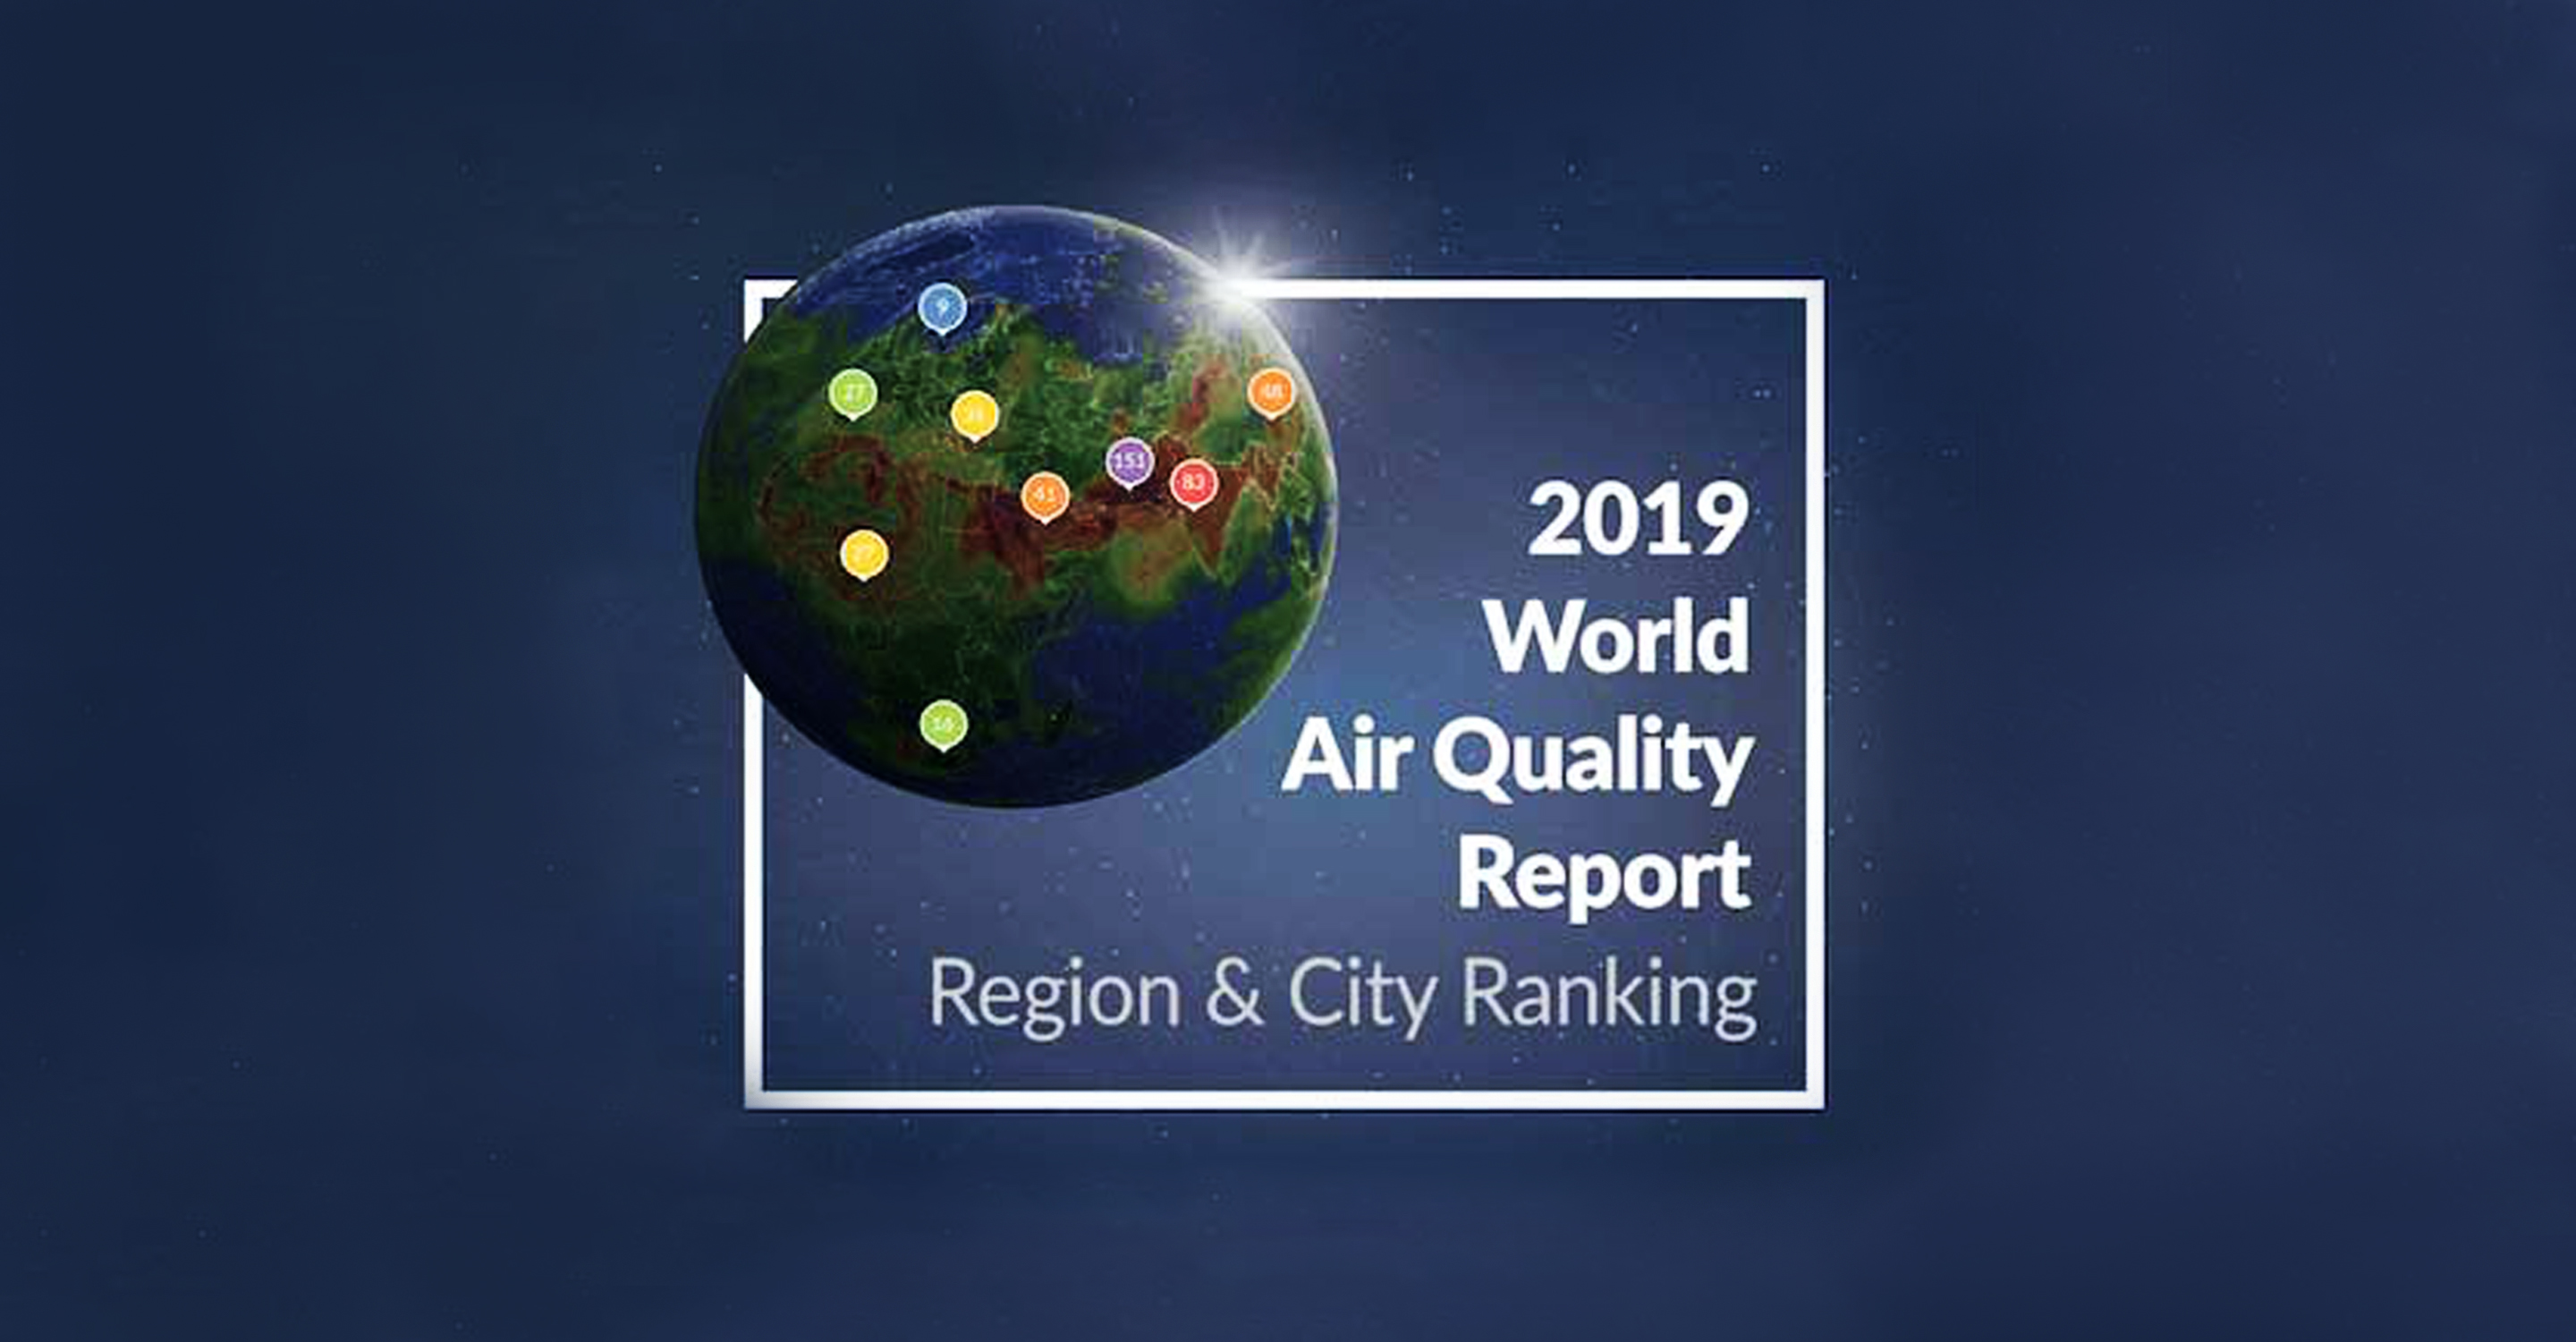 World Air Quality Report